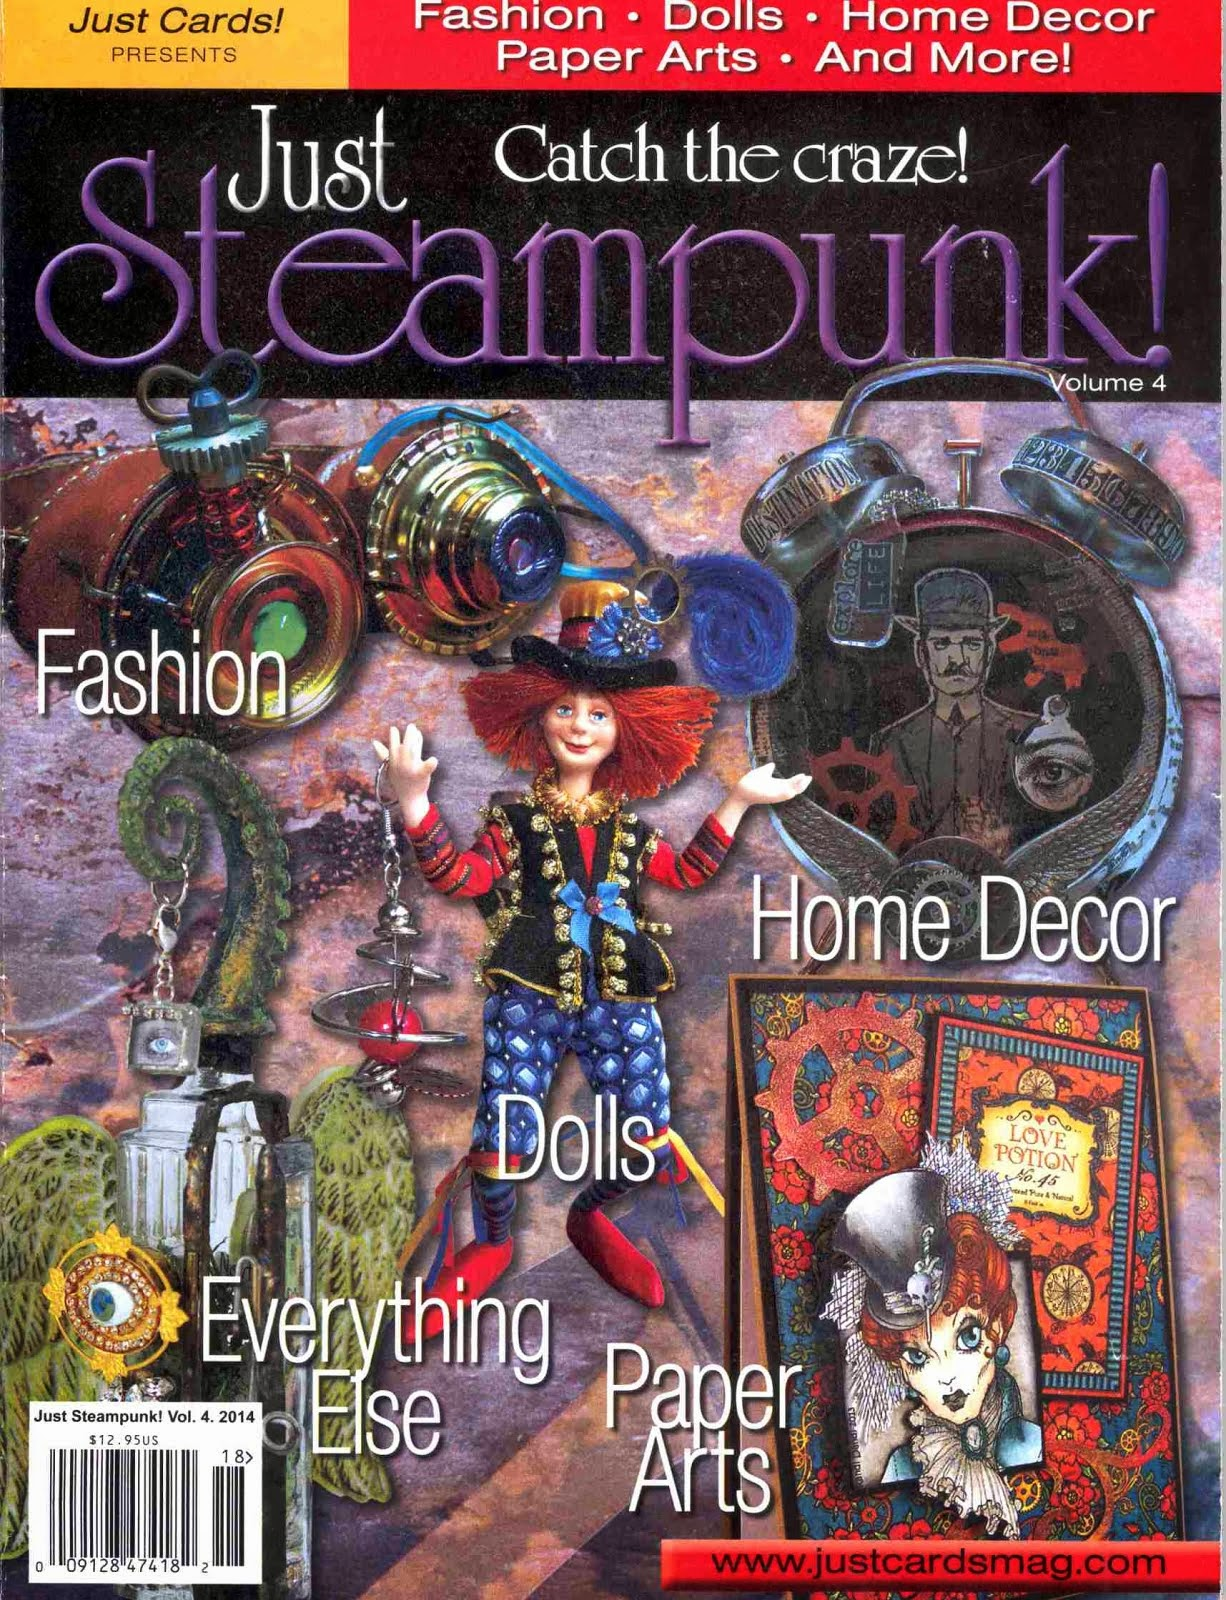 Just Steampunk